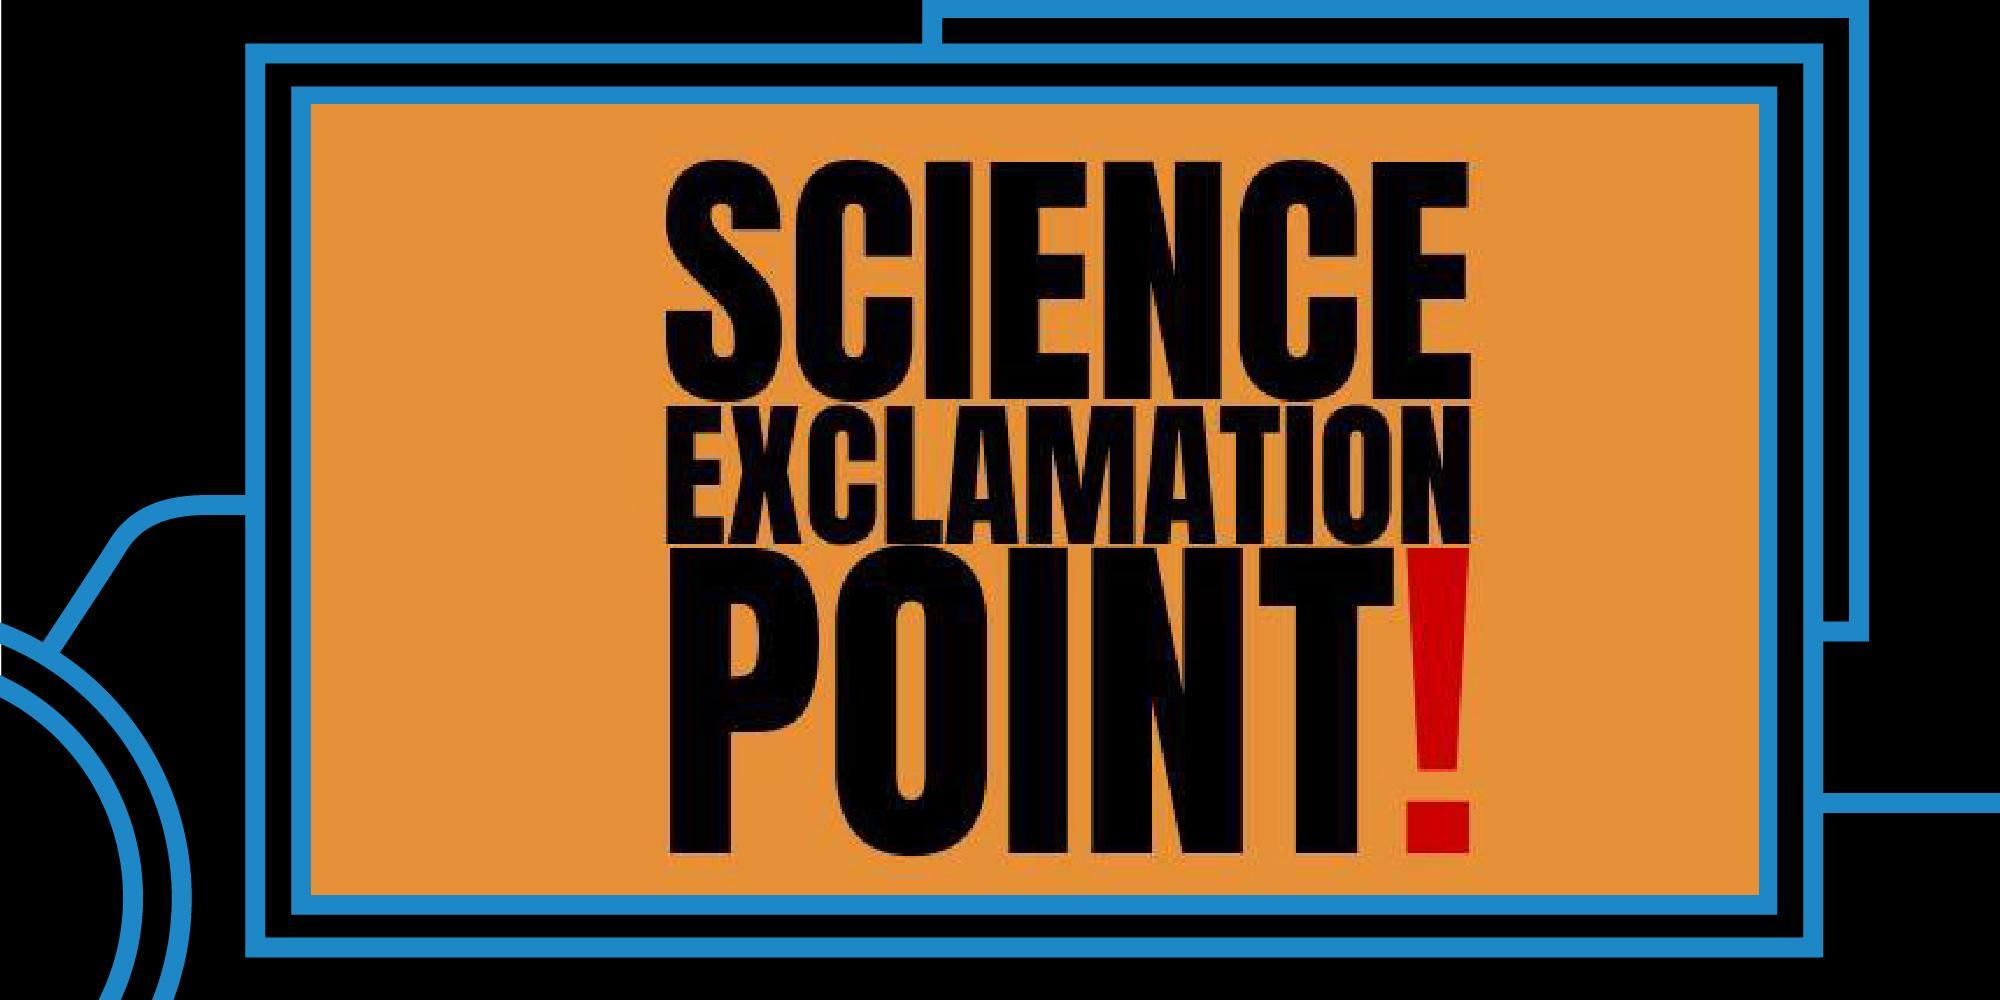 3199 image - Science Exclamation Point